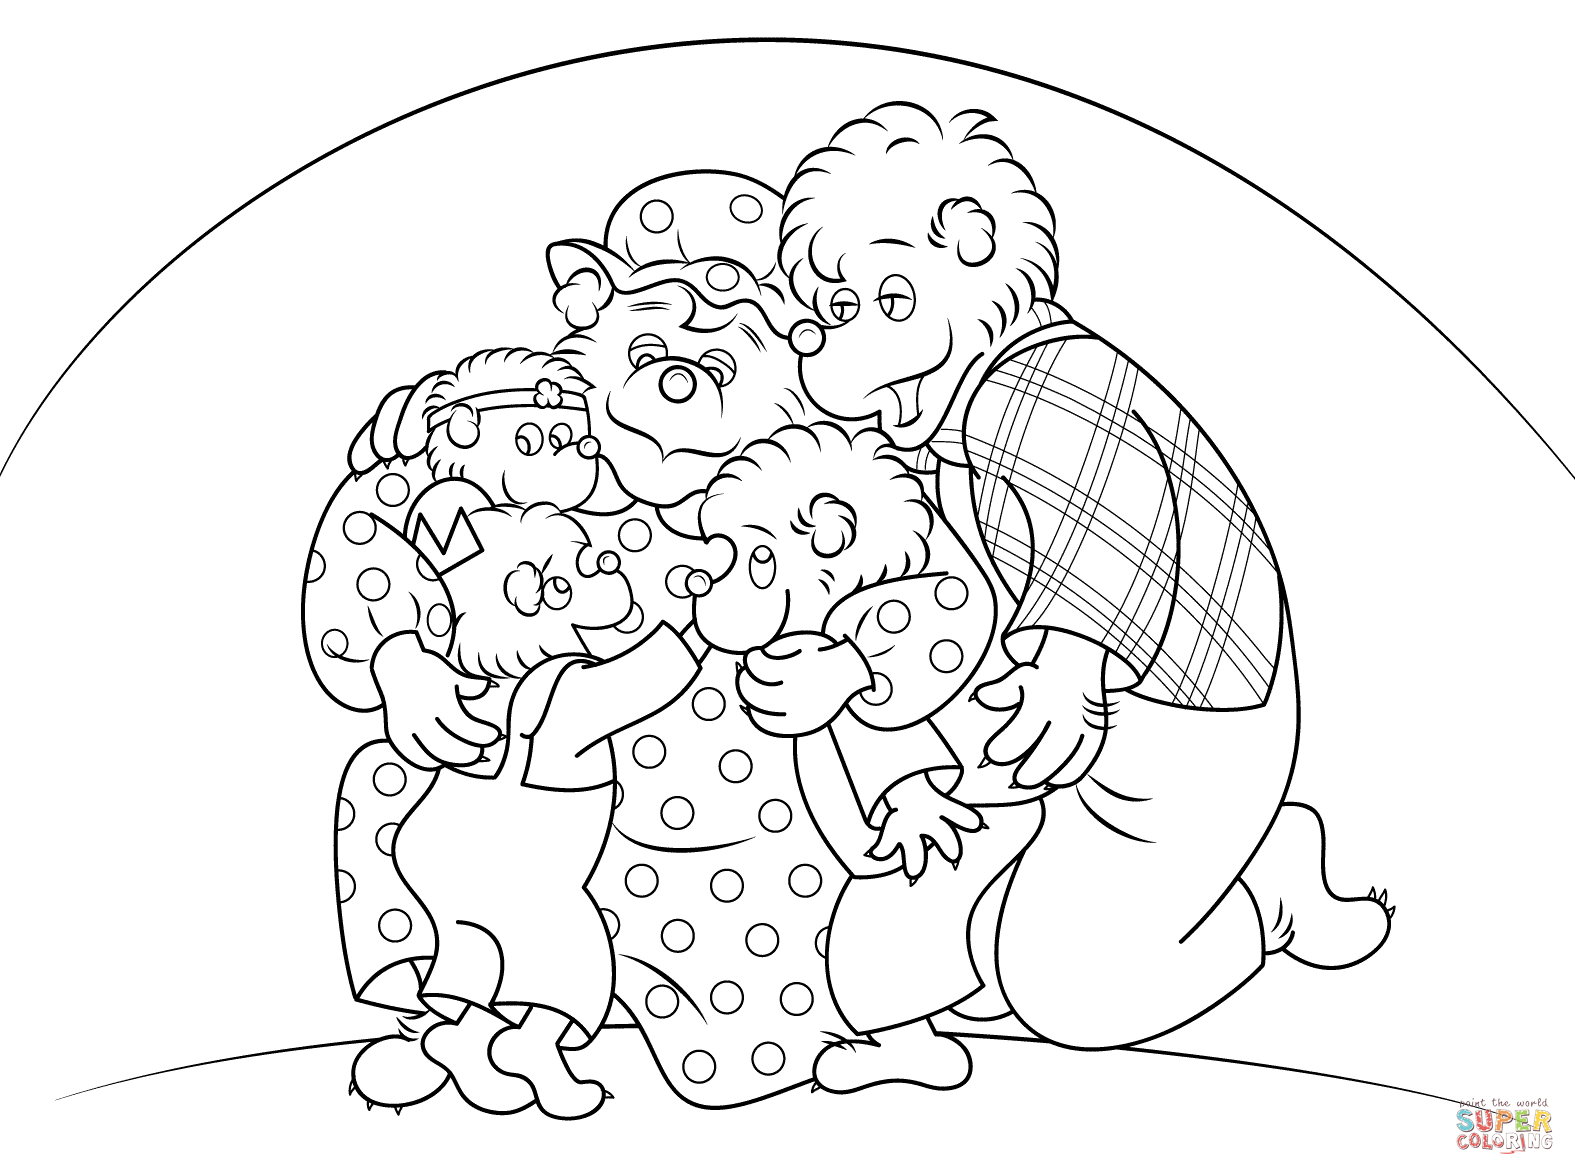 berenstain-bears-coloring-page-0015-q1